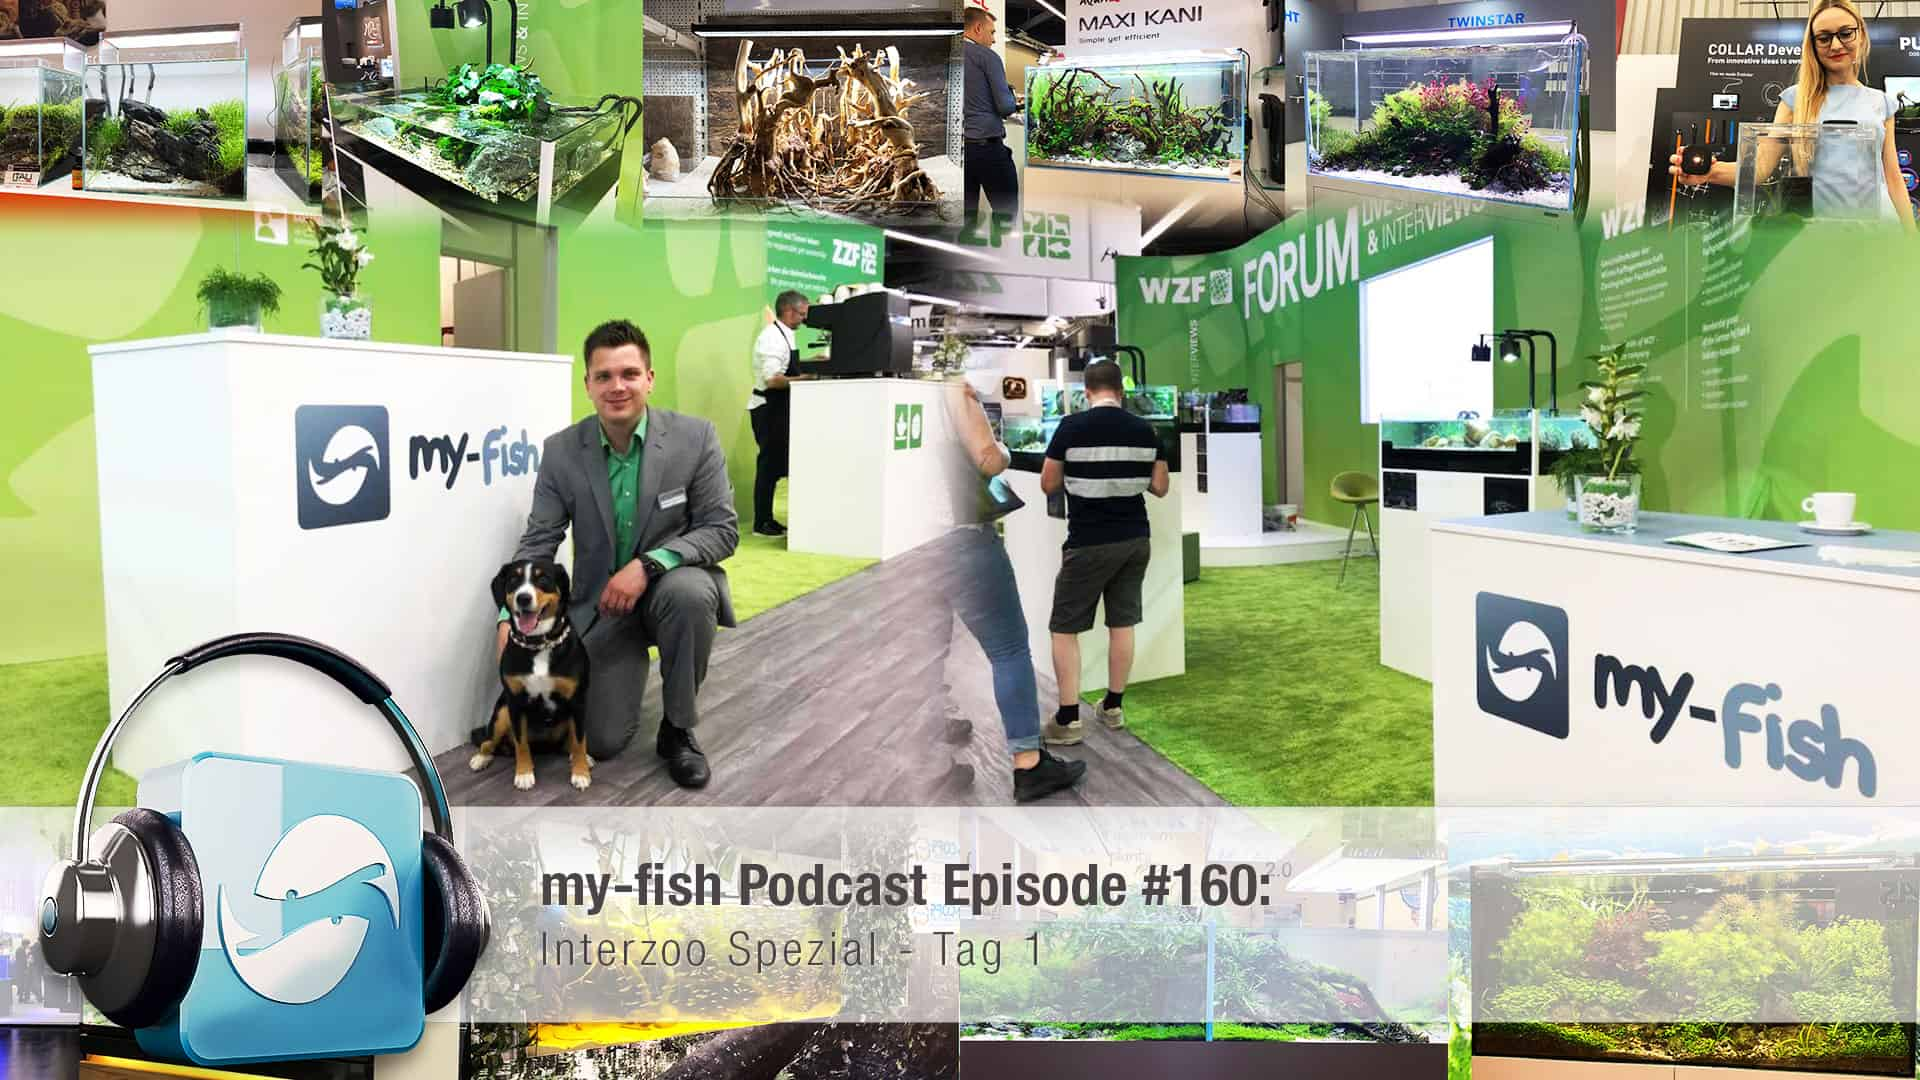 Podcast Episode #160: Die Interzoo 2018 - Das my-fish Special - Tag 1 1